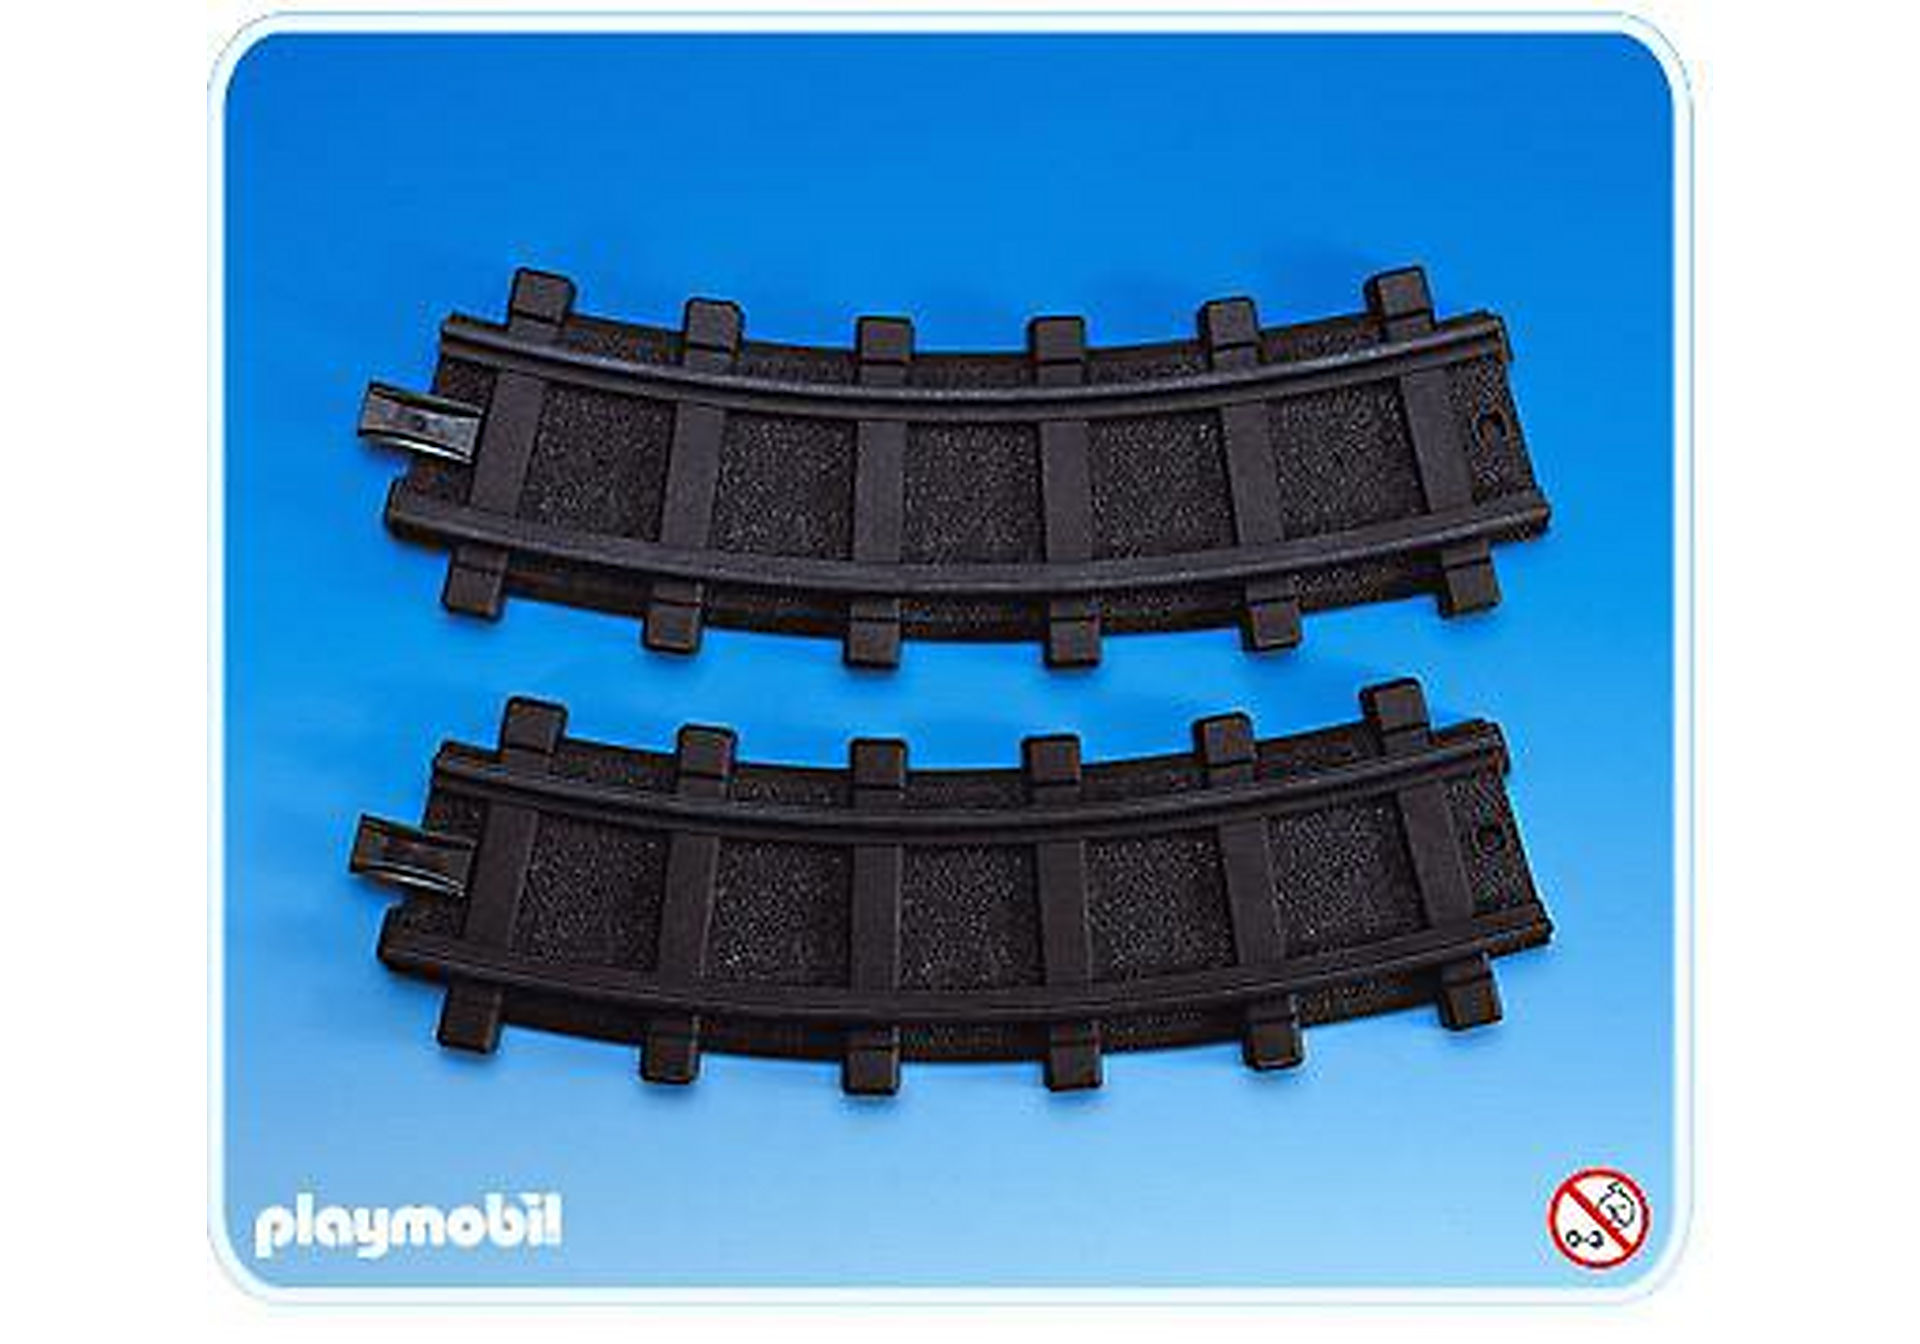 http://media.playmobil.com/i/playmobil/4387-A_product_detail/2 rails courbes